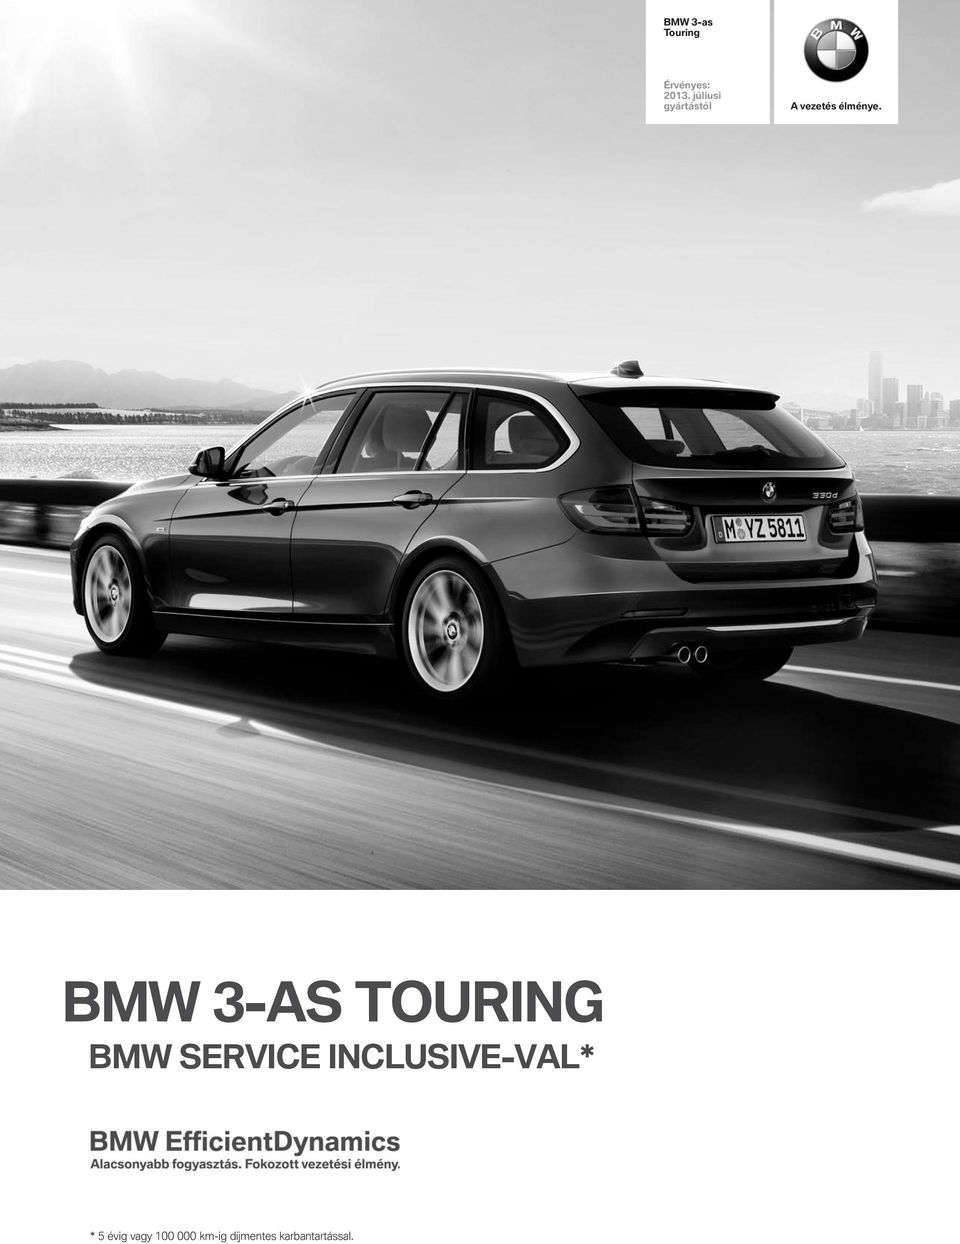 BMW 3-aS touring BMW SERVICE